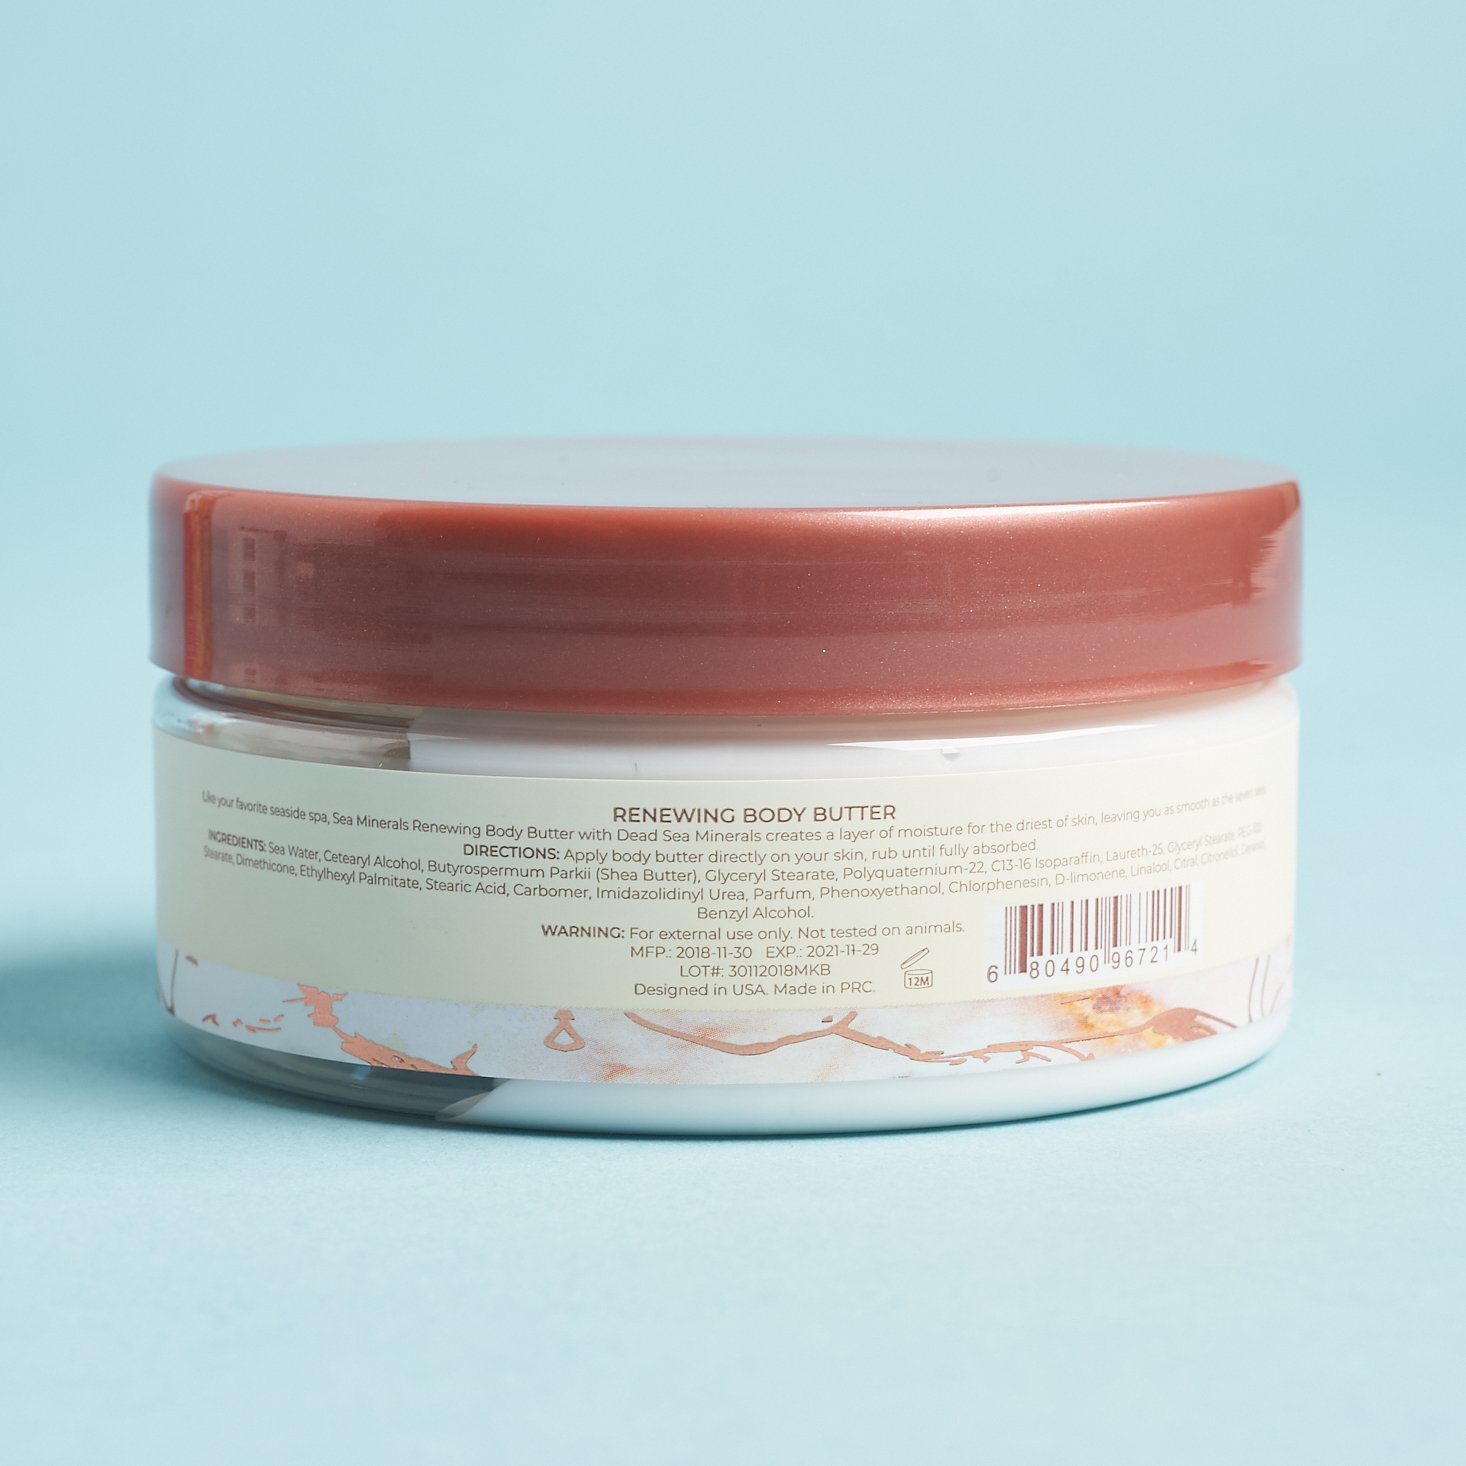 Directions and ingredients for Manna Kadar Beauty Sea Minerals Renewing Body Butter